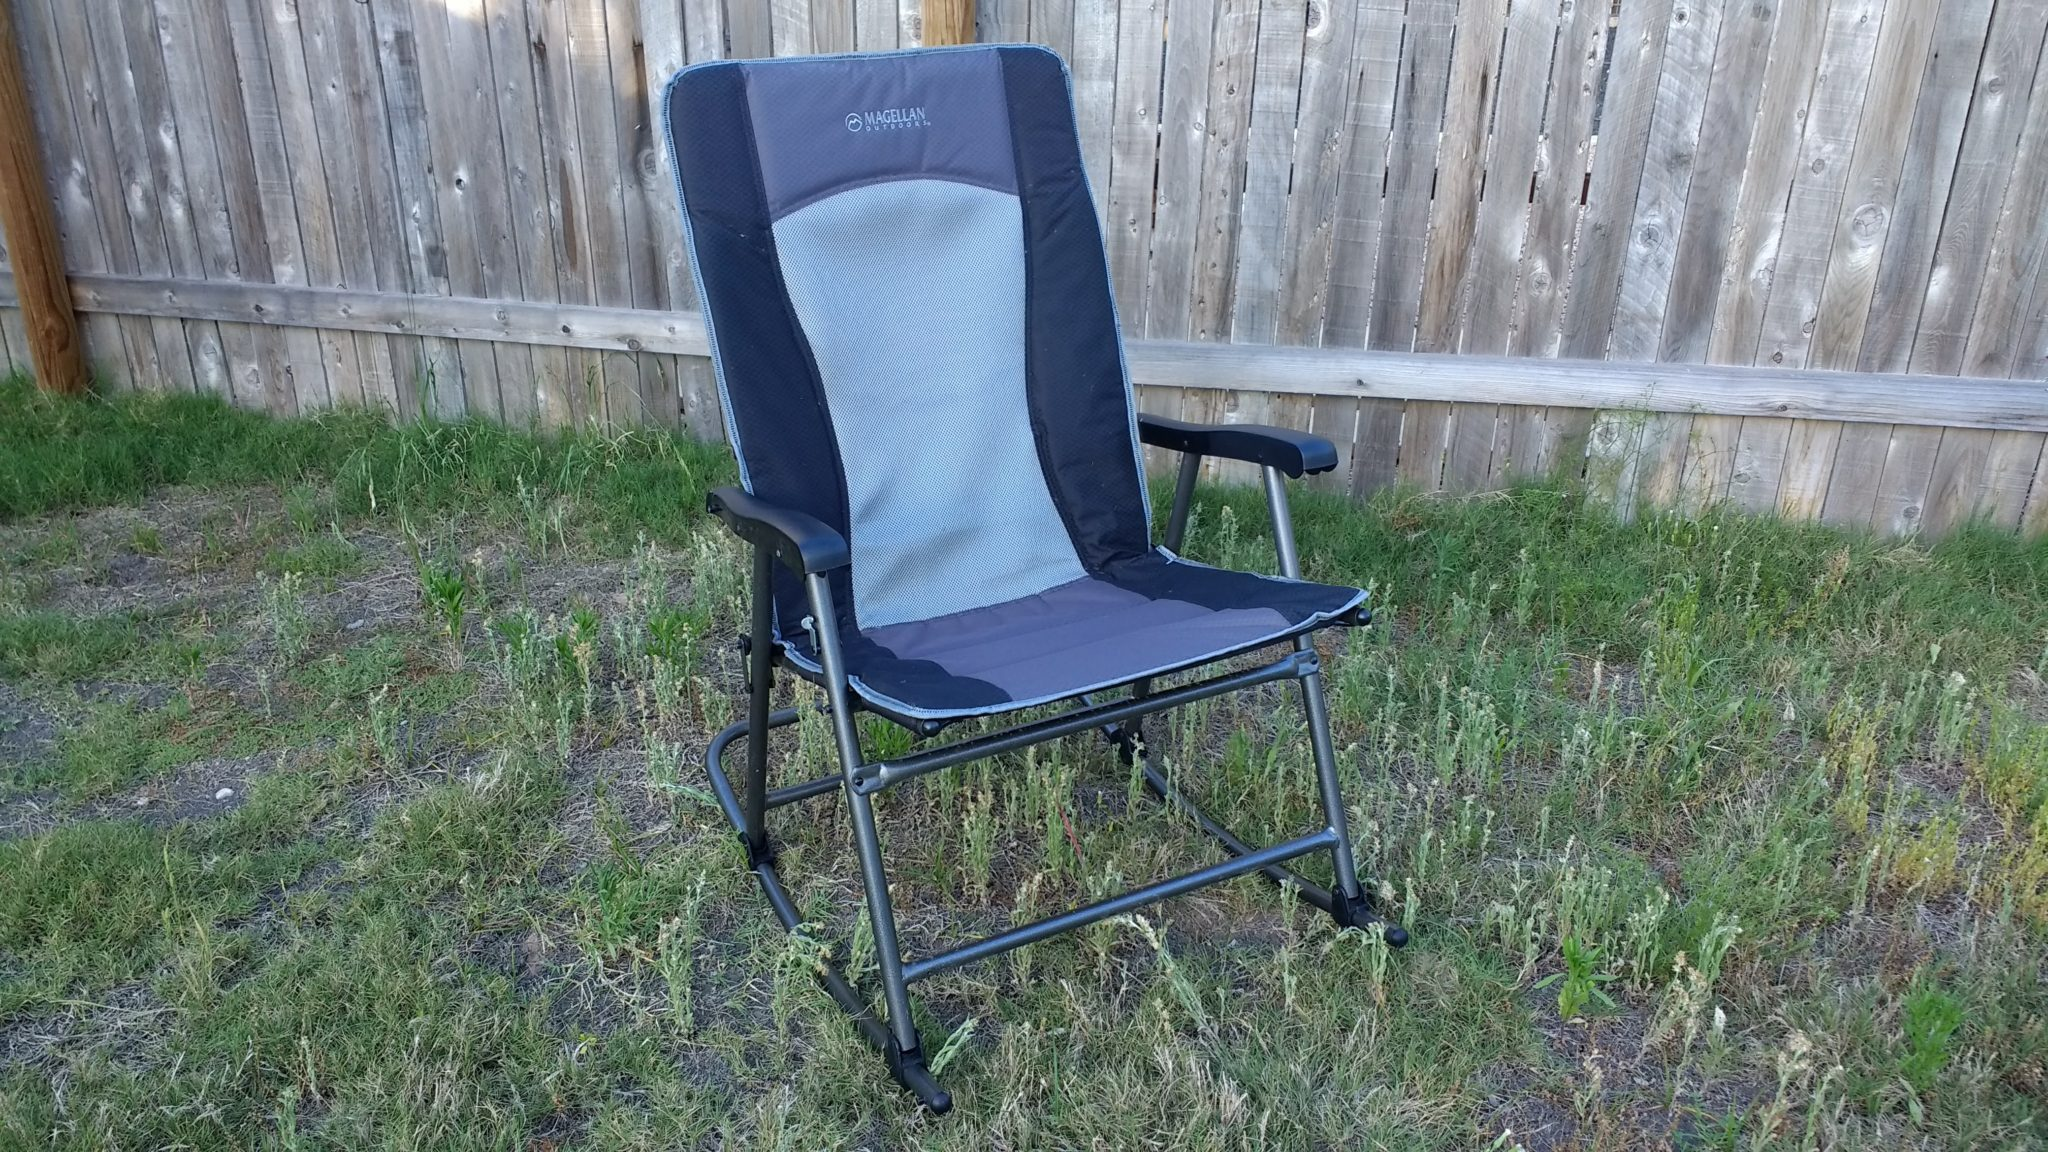 5 Top Heavy Duty Folding Lawn Chairs My Junior All Star